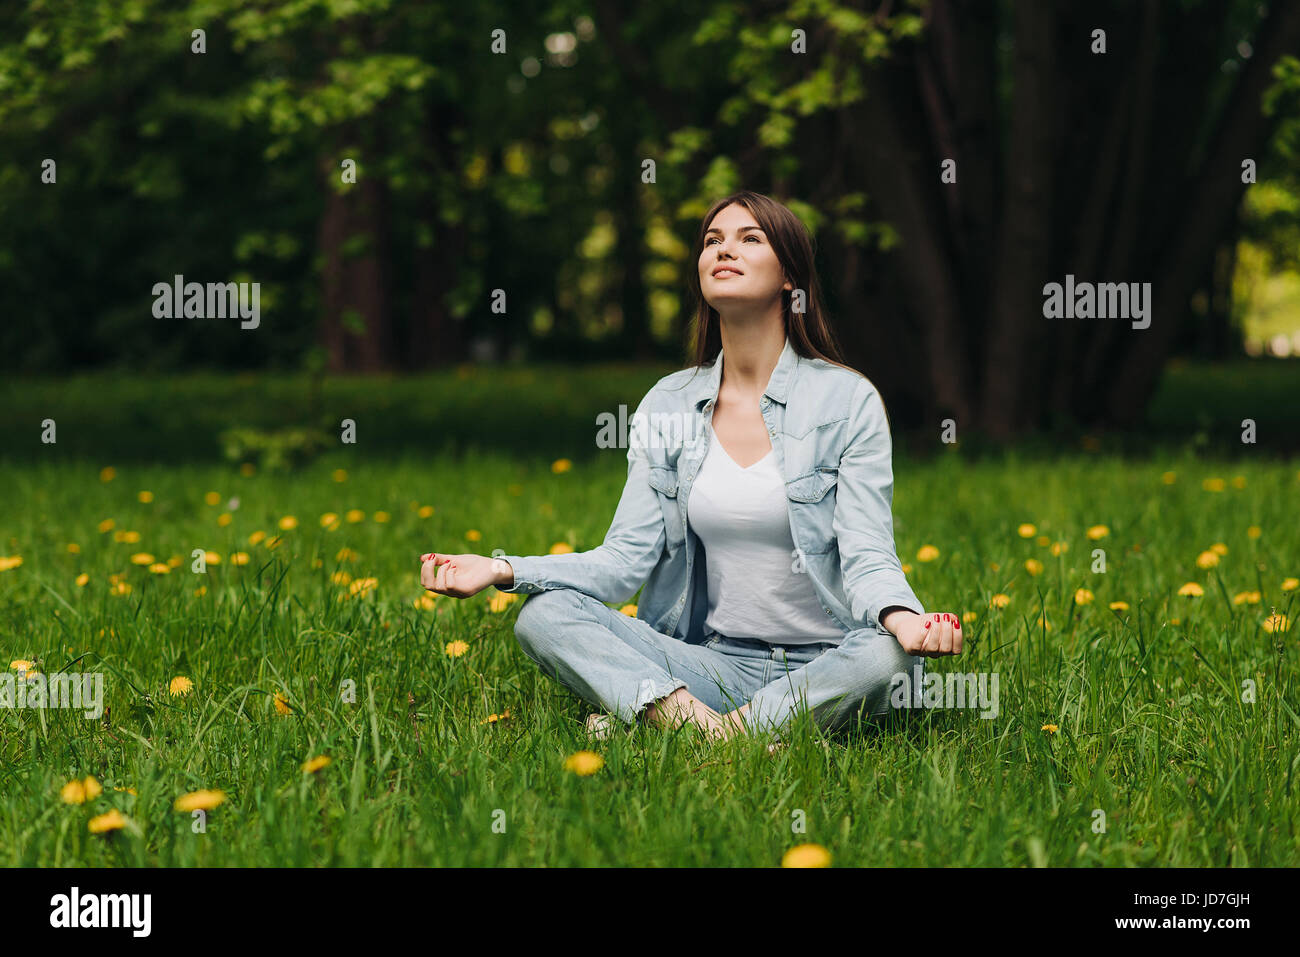 Beautiful young girl in casual clothes meditating in spring park - Stock Image